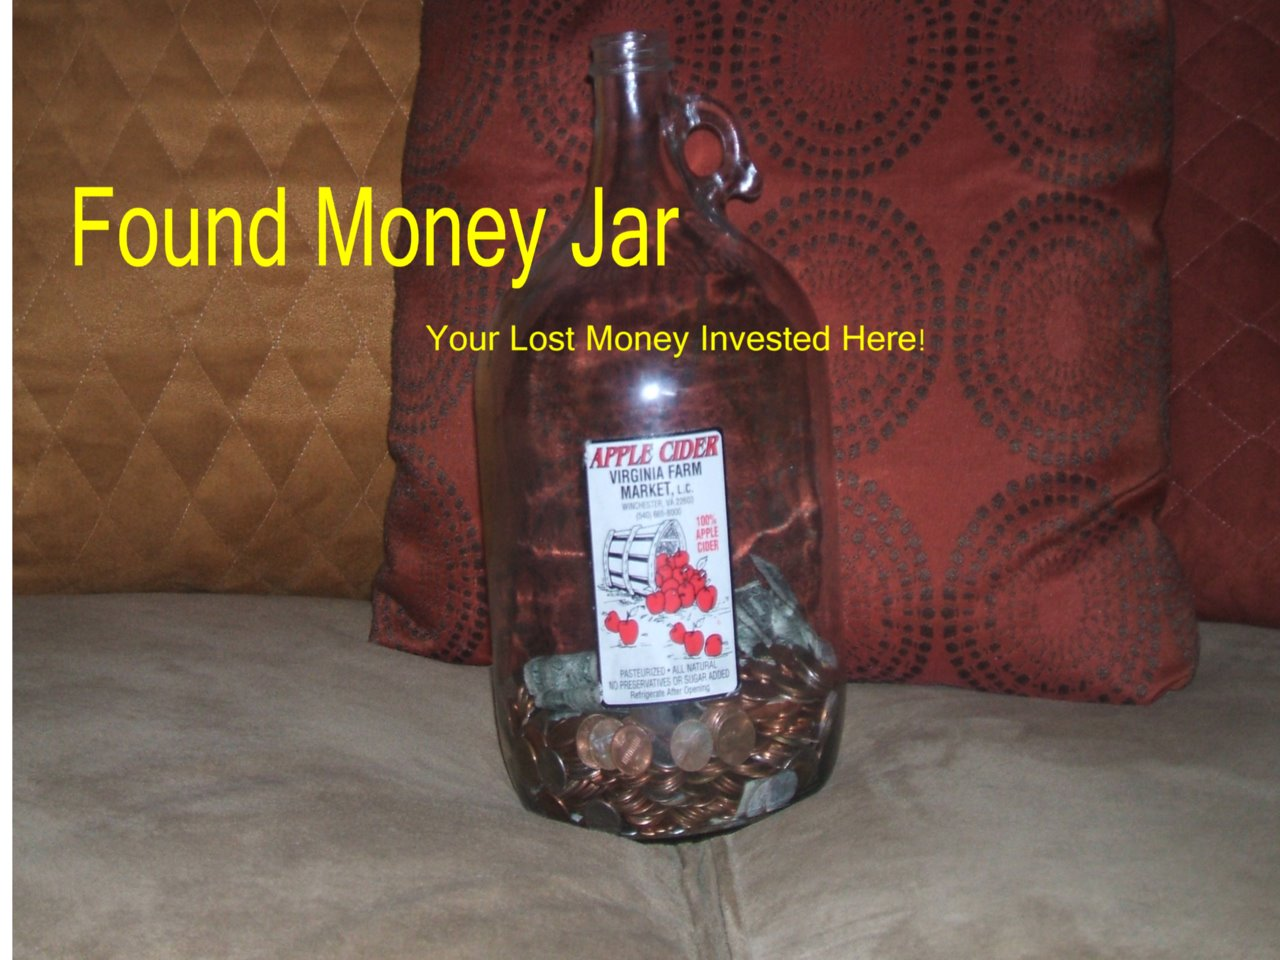 The Found Money Jar